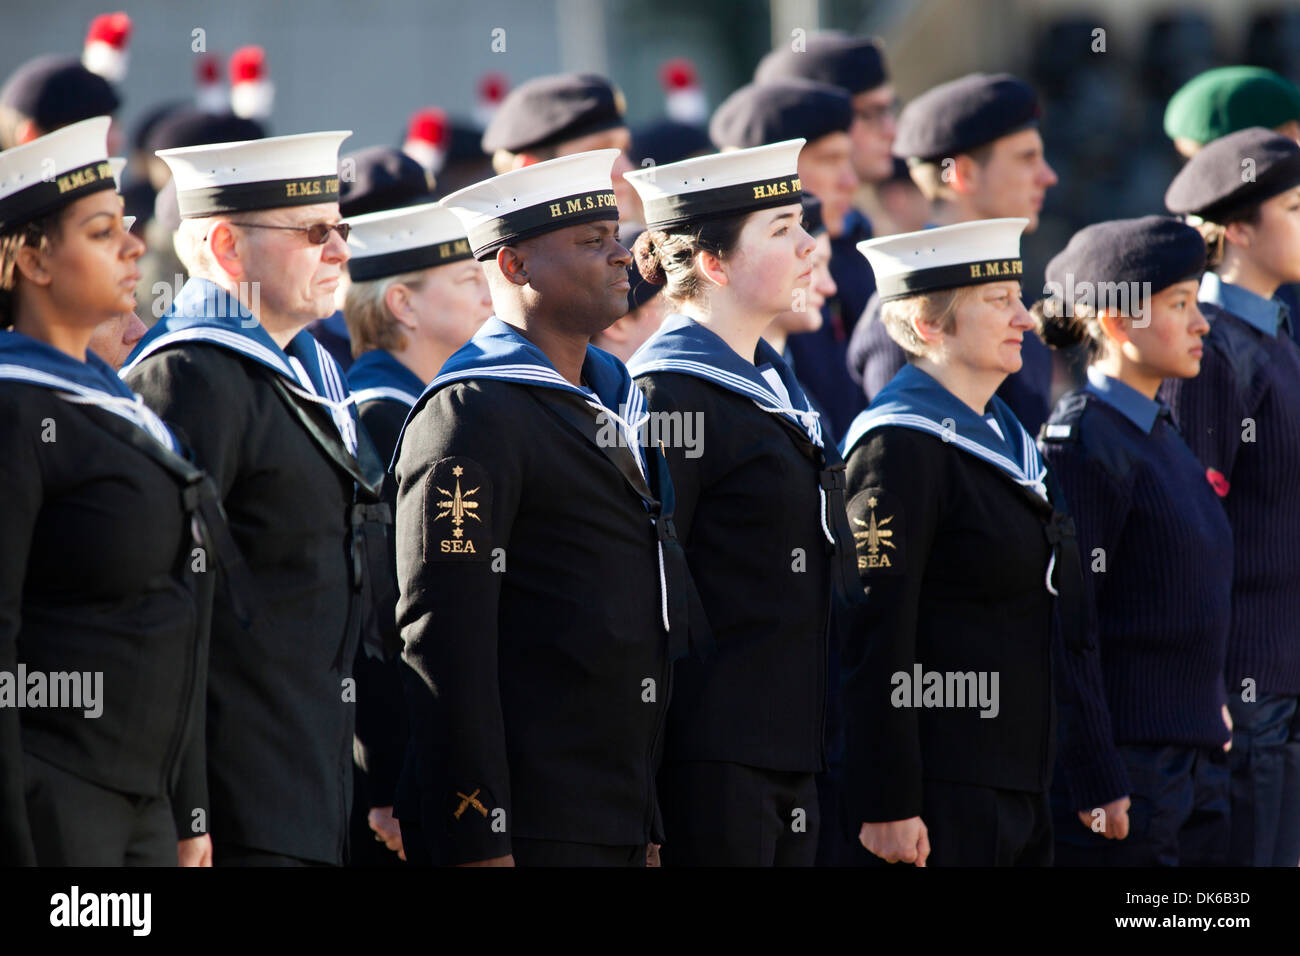 Remembrance Sunday Service, Centenary Square, Birmingham. Pictured, members of the services stand to attention. - Stock Image